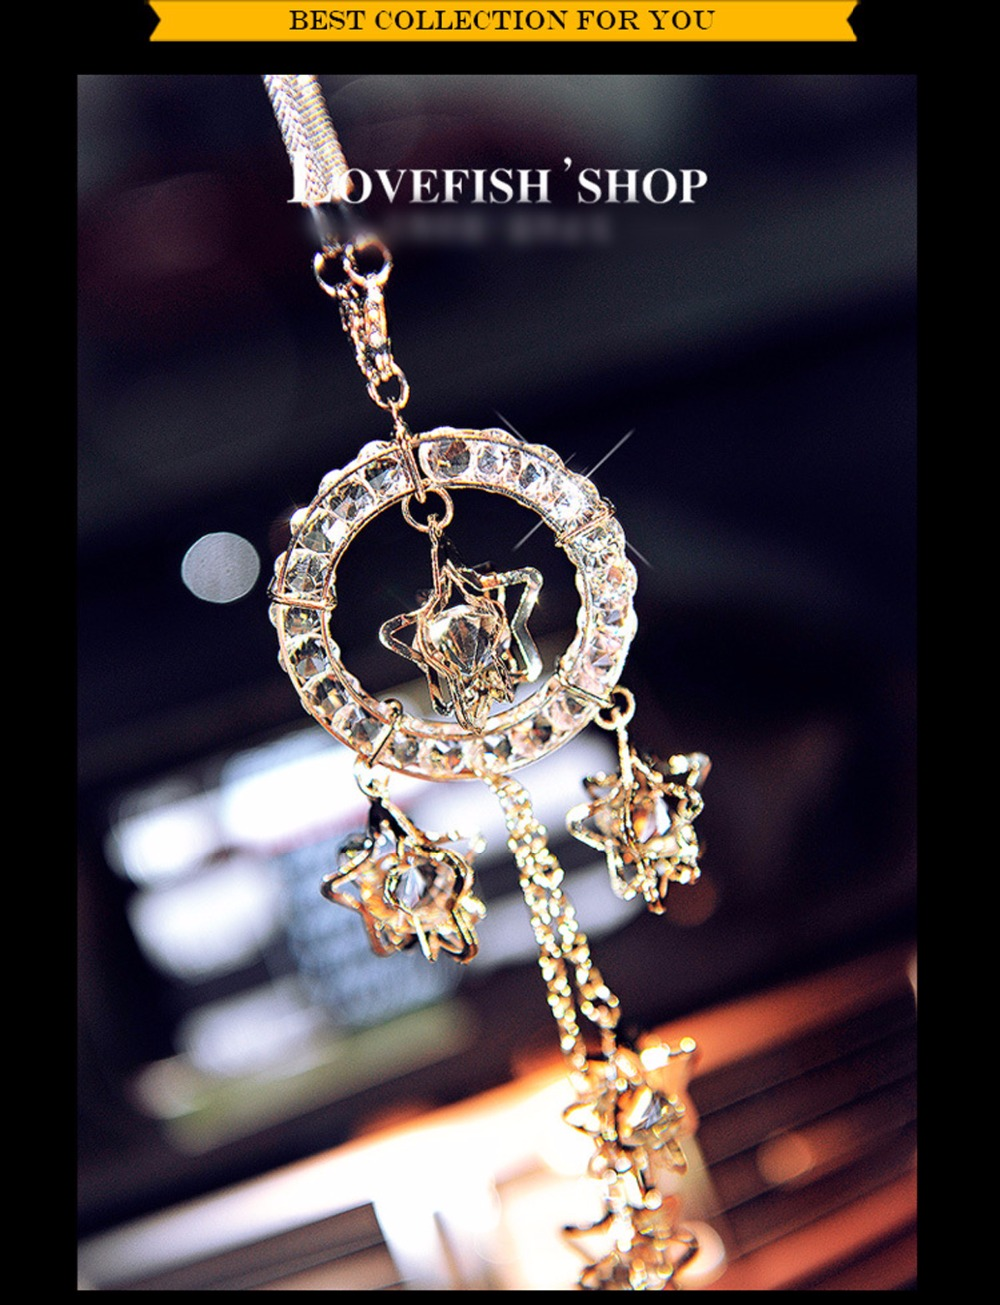 Car interior hanging - Car Rearview Mirror Hanging Crystal Charm Dangling Pendant Ornament Car Interior Decoration Accessories 2016 Best Girl